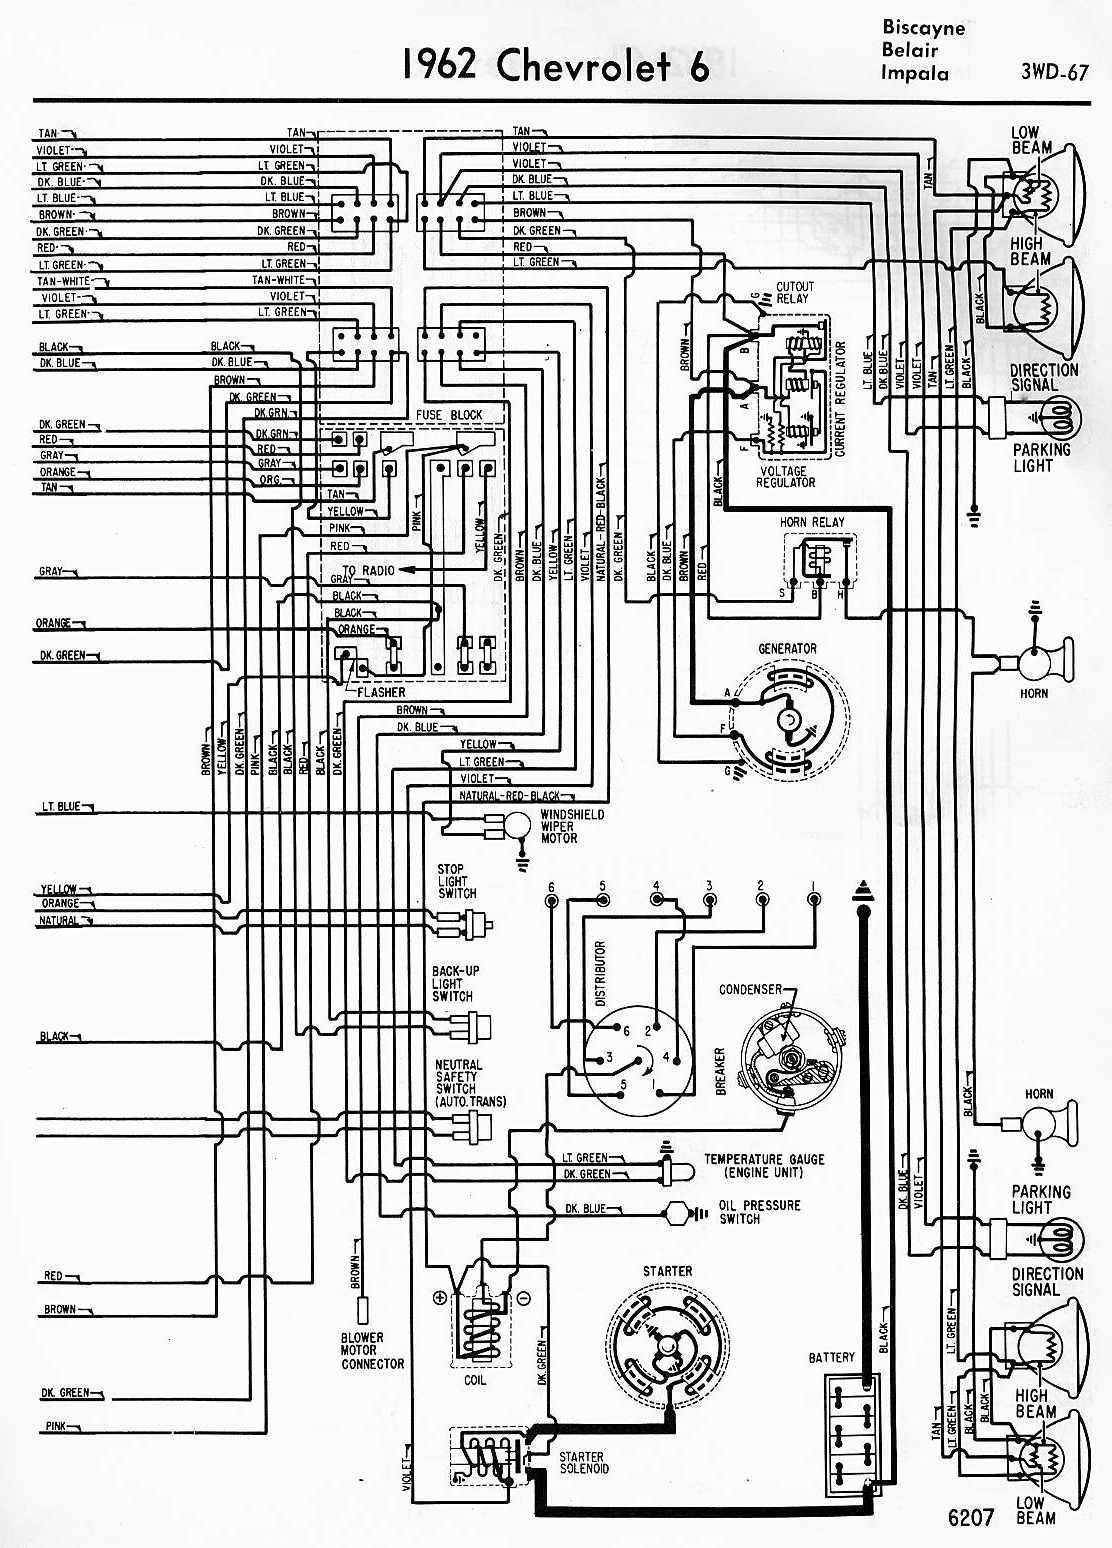 under dash wiring harness 1970 impala wiring diagram mega 1970 chevy impala full size wiring harness diagram manual [ 1112 x 1548 Pixel ]